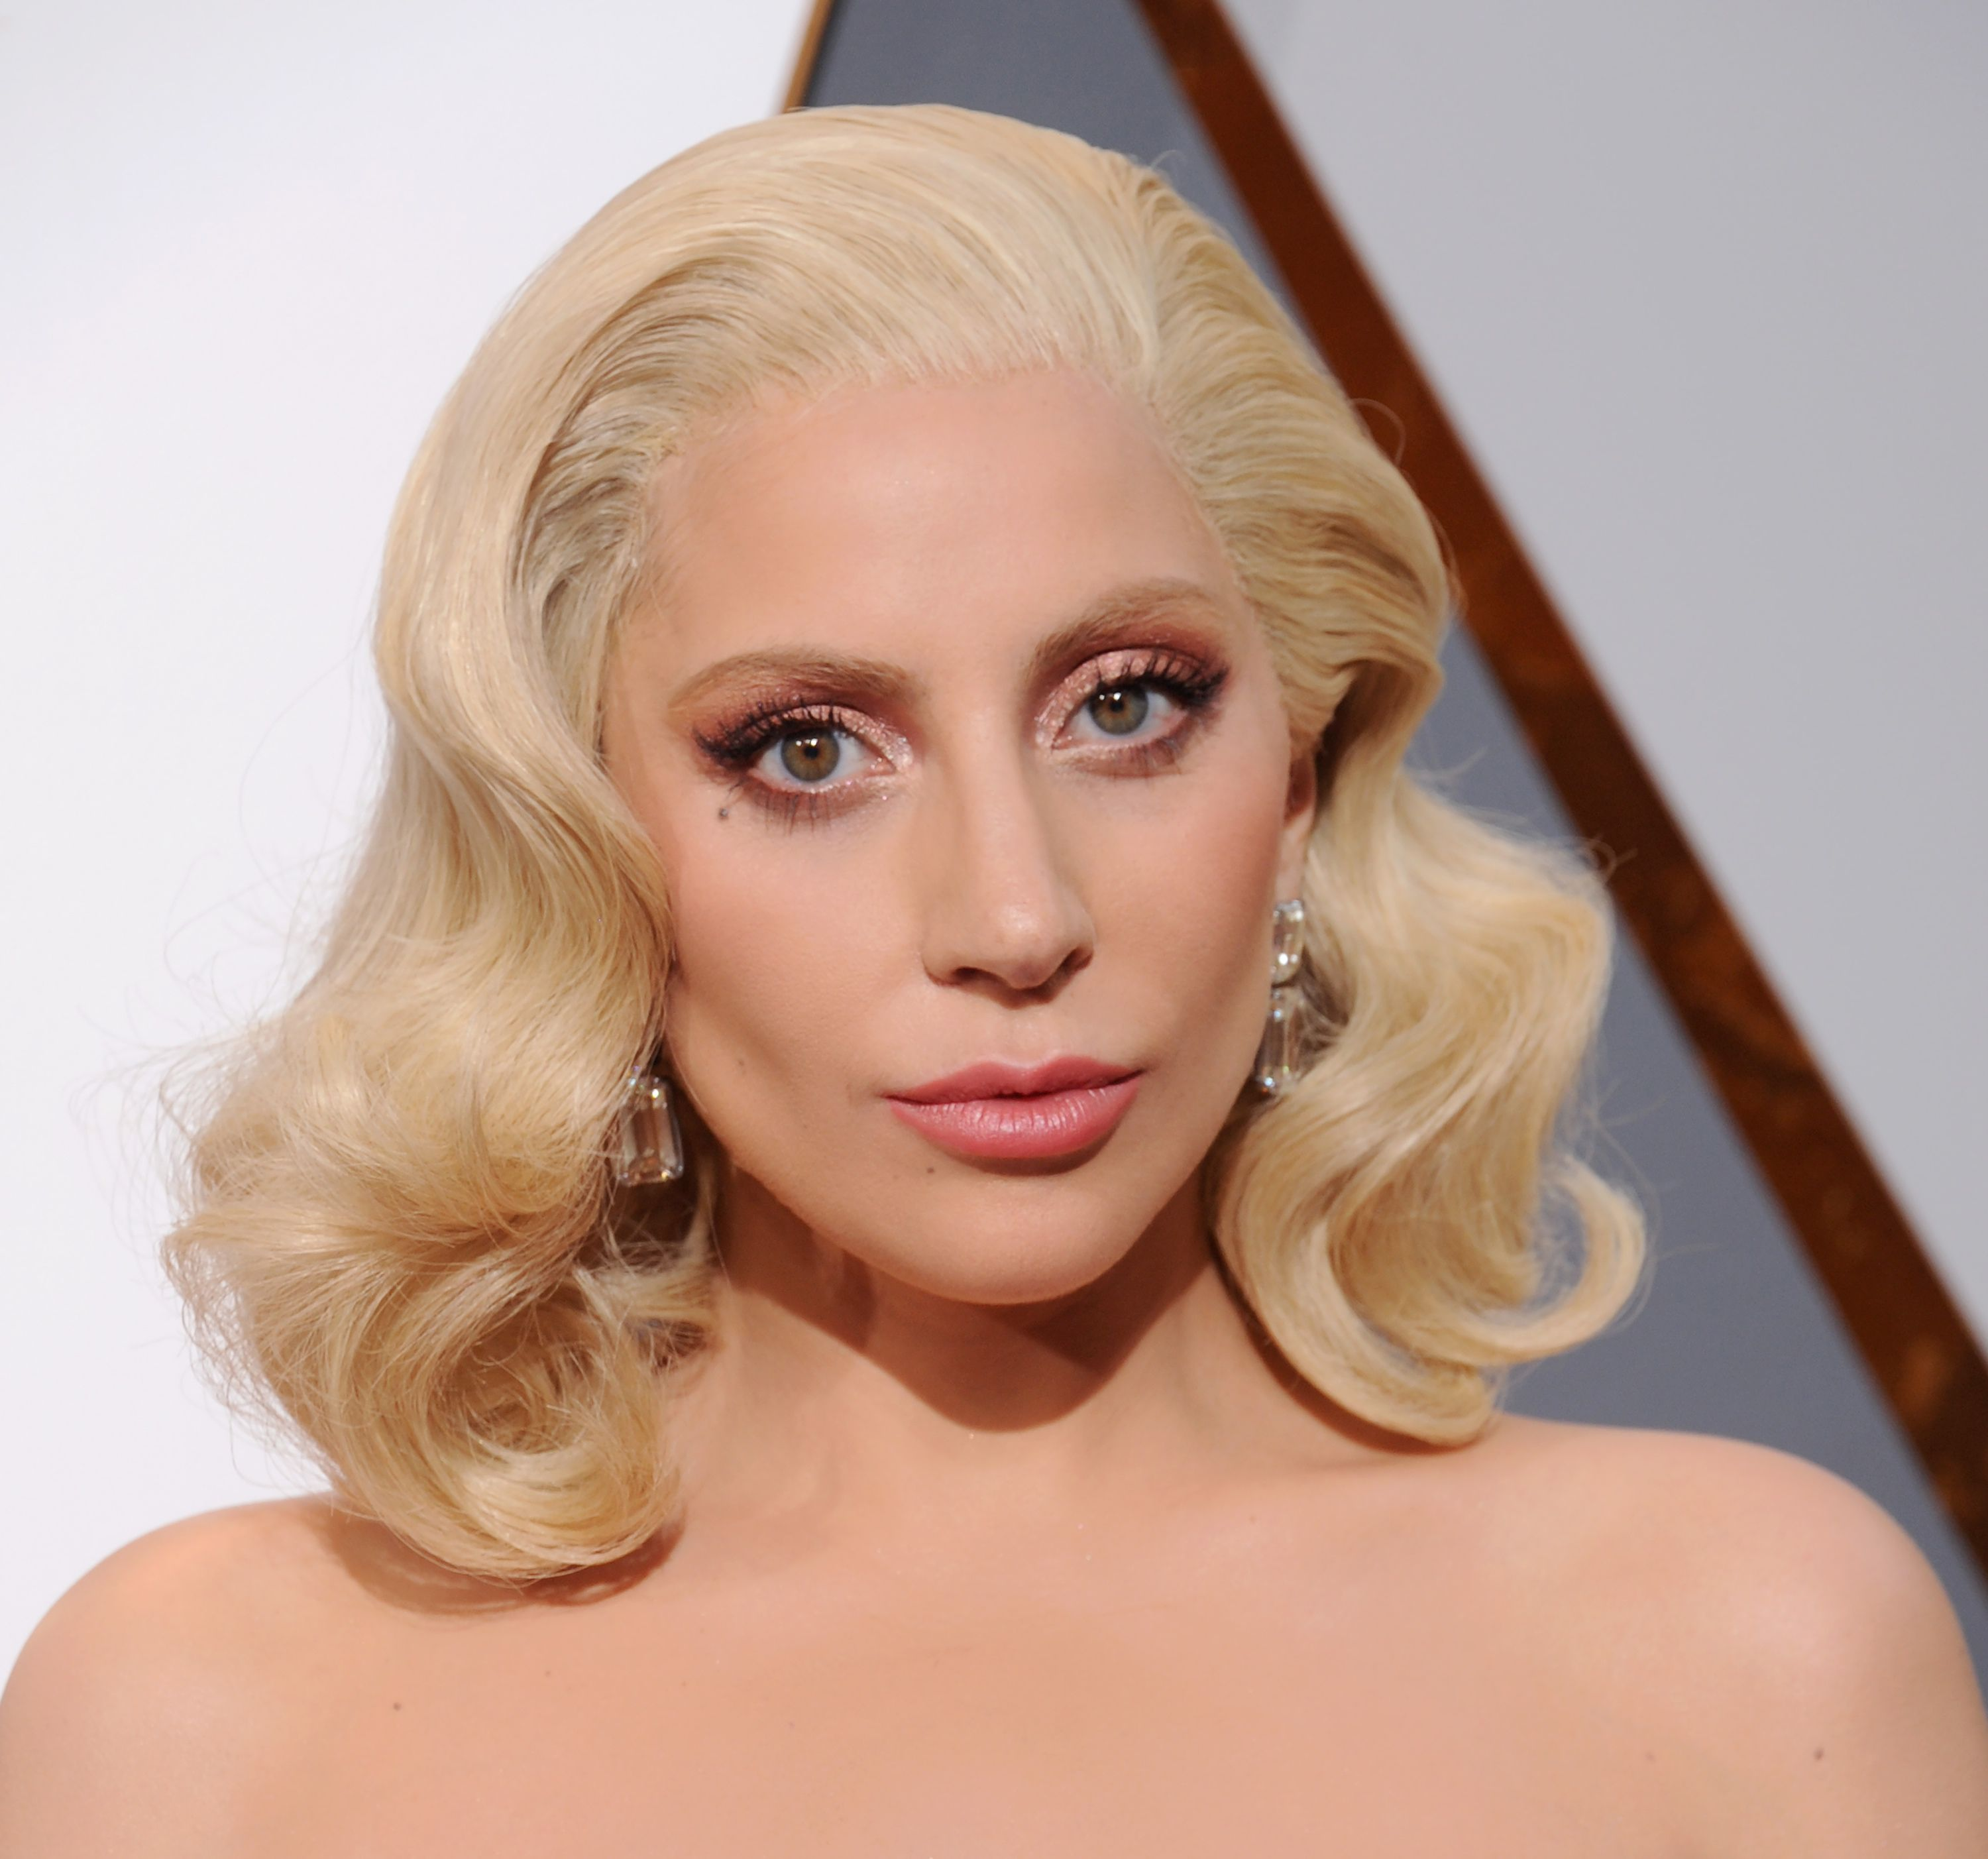 lady gaga transsexual nude -